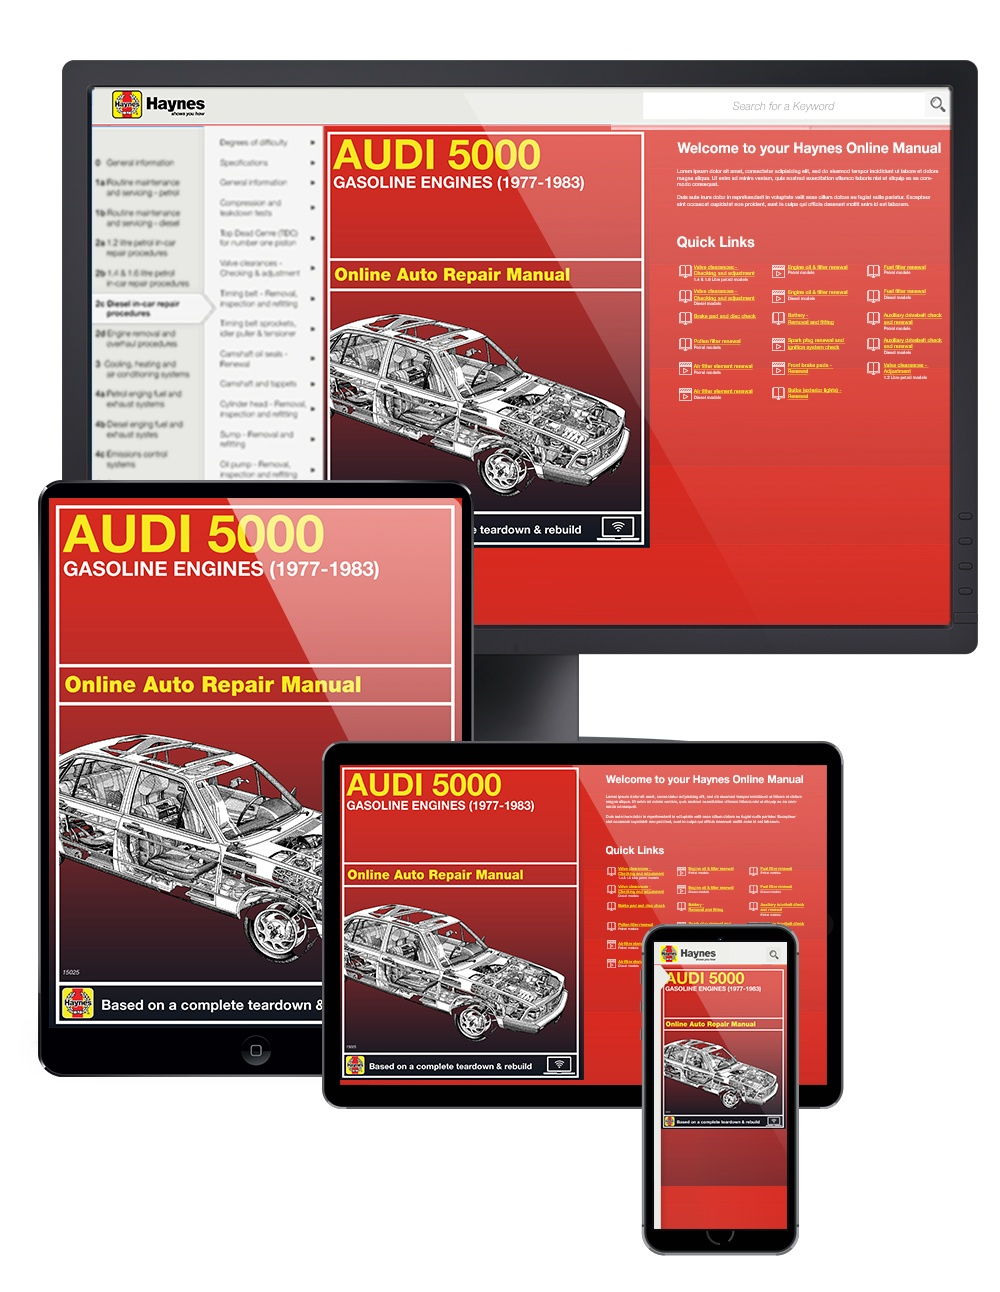 Audi 5000 with Gas Engines (77-83) Haynes Online Manual from Haynes Manuals US